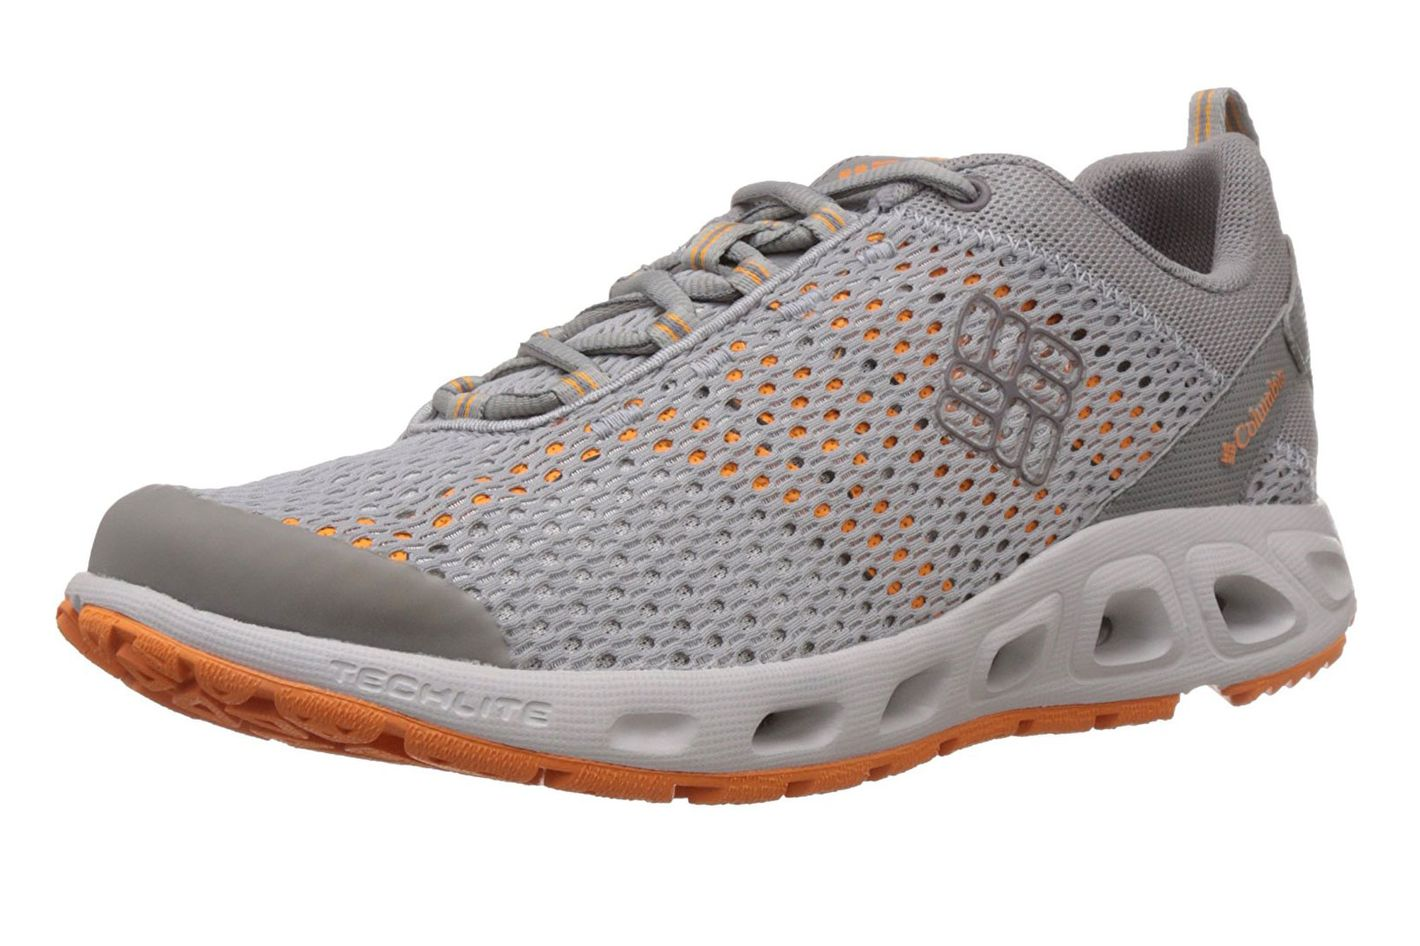 3e31b21f87d The 18 Best Water Shoes and Reviews for Men